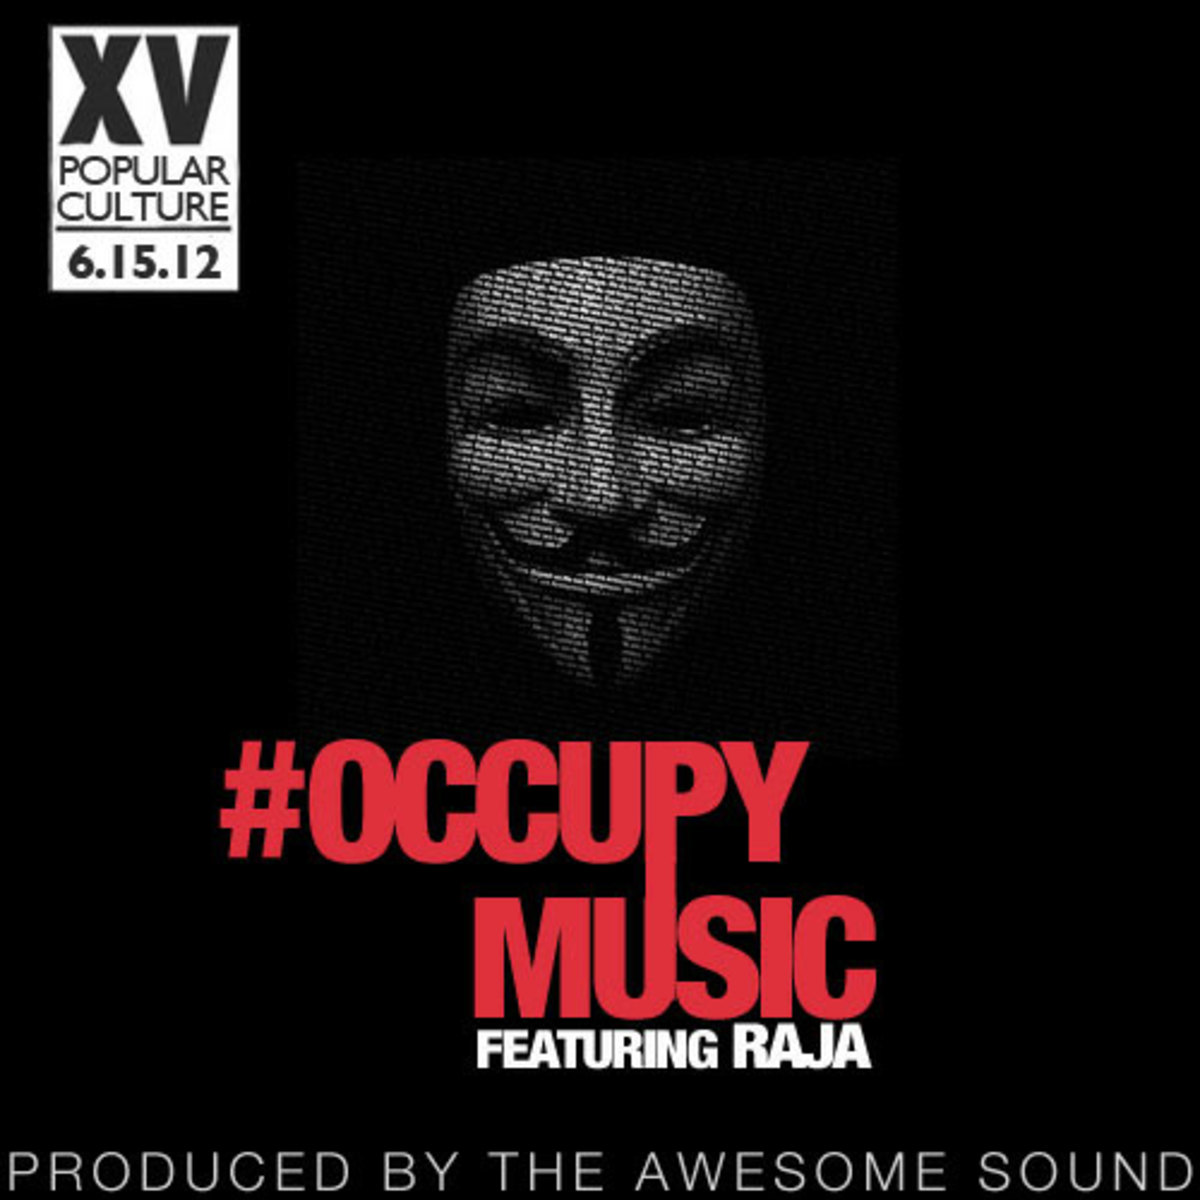 xv-occupymusic.jpg